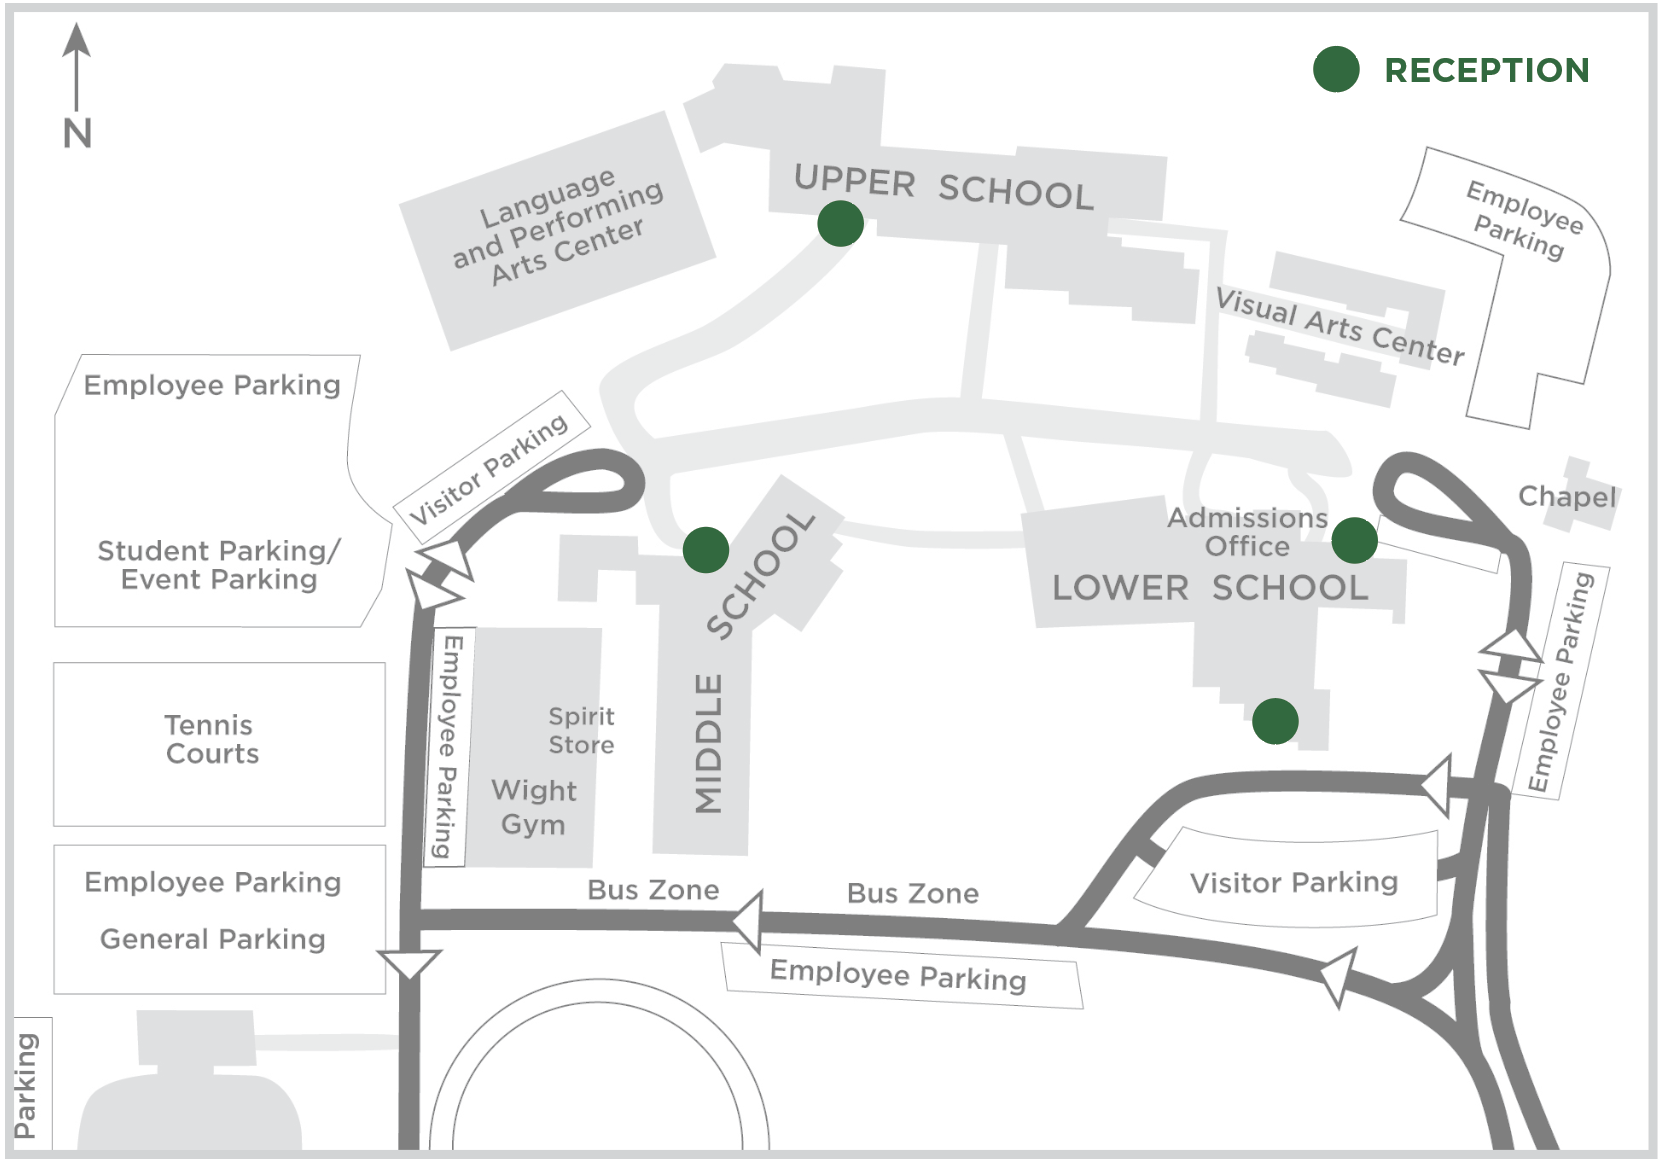 Charles Wright Academy Reception Campus Map